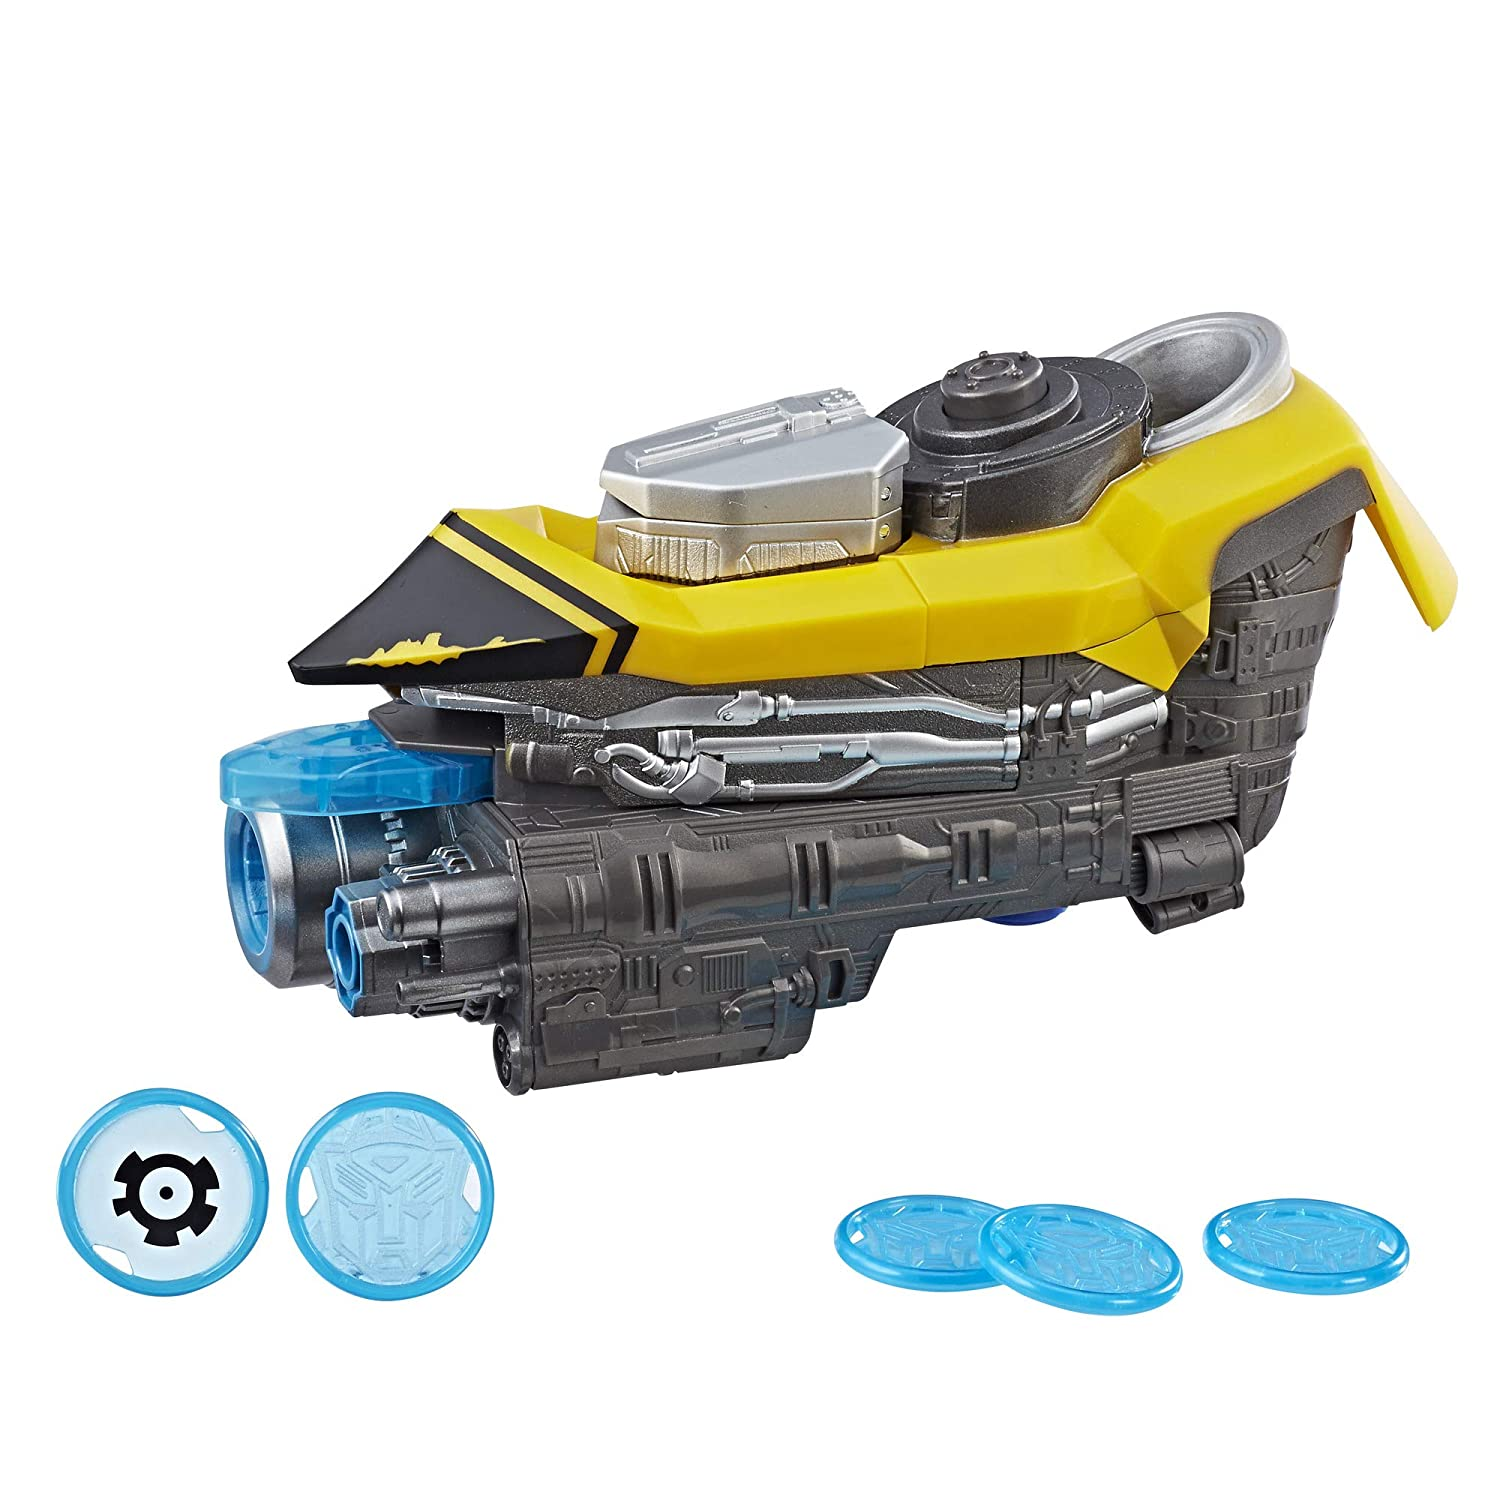 For 599/-(67% Off) Transformers Bumblebee Bumblebee Stinger Blaster at Amazon India